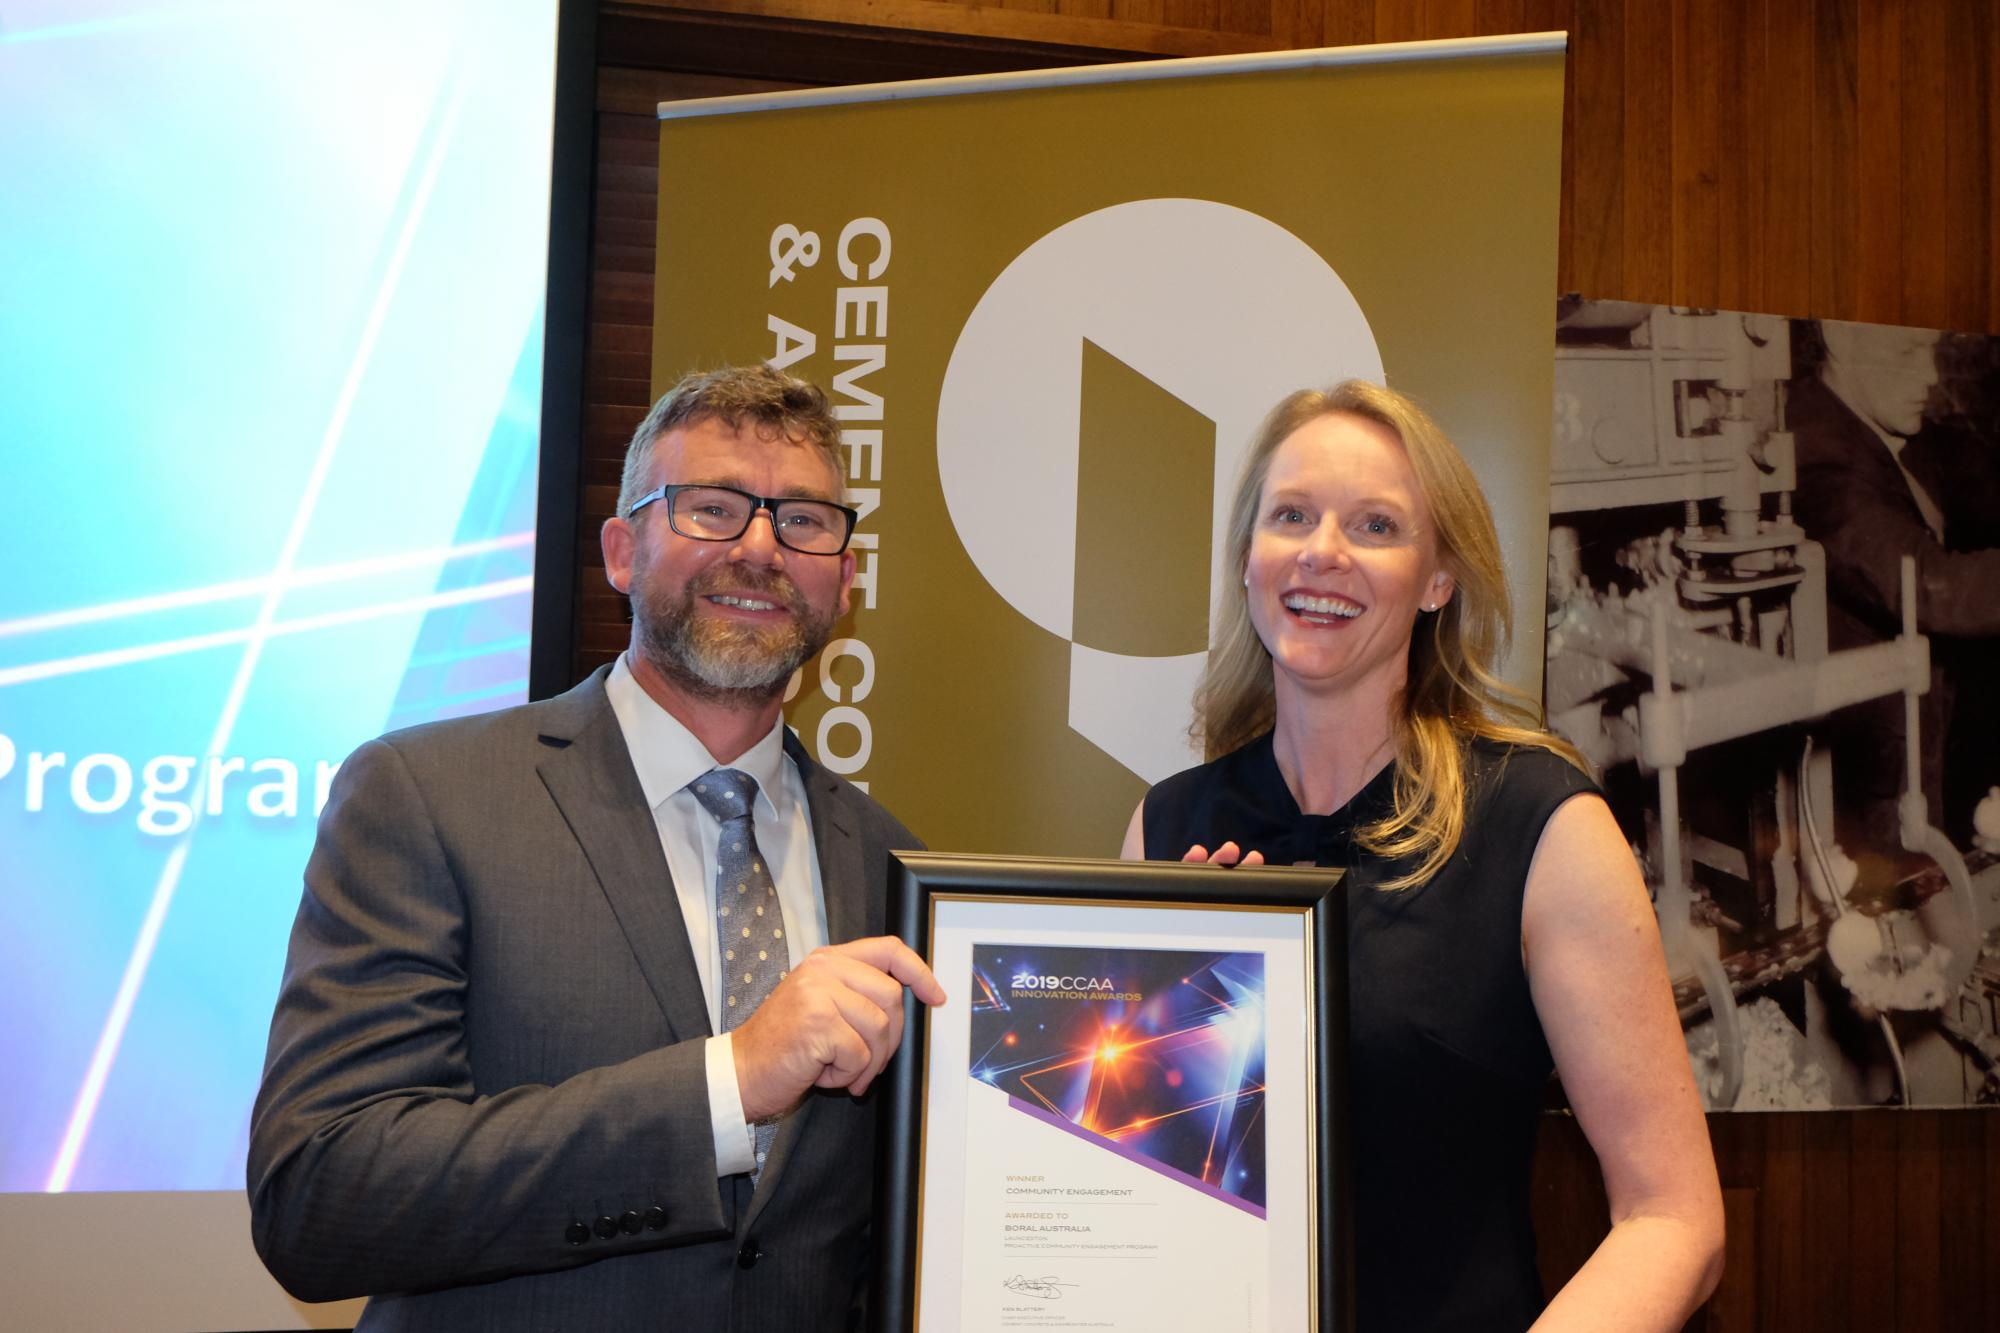 Pictured: Tasmanian Minister for Resources, Building and Construction, Sarah Courtney, presenting Boral Tasmania General Manager Gary Chapman with the award in Hobart on May 24, 2019